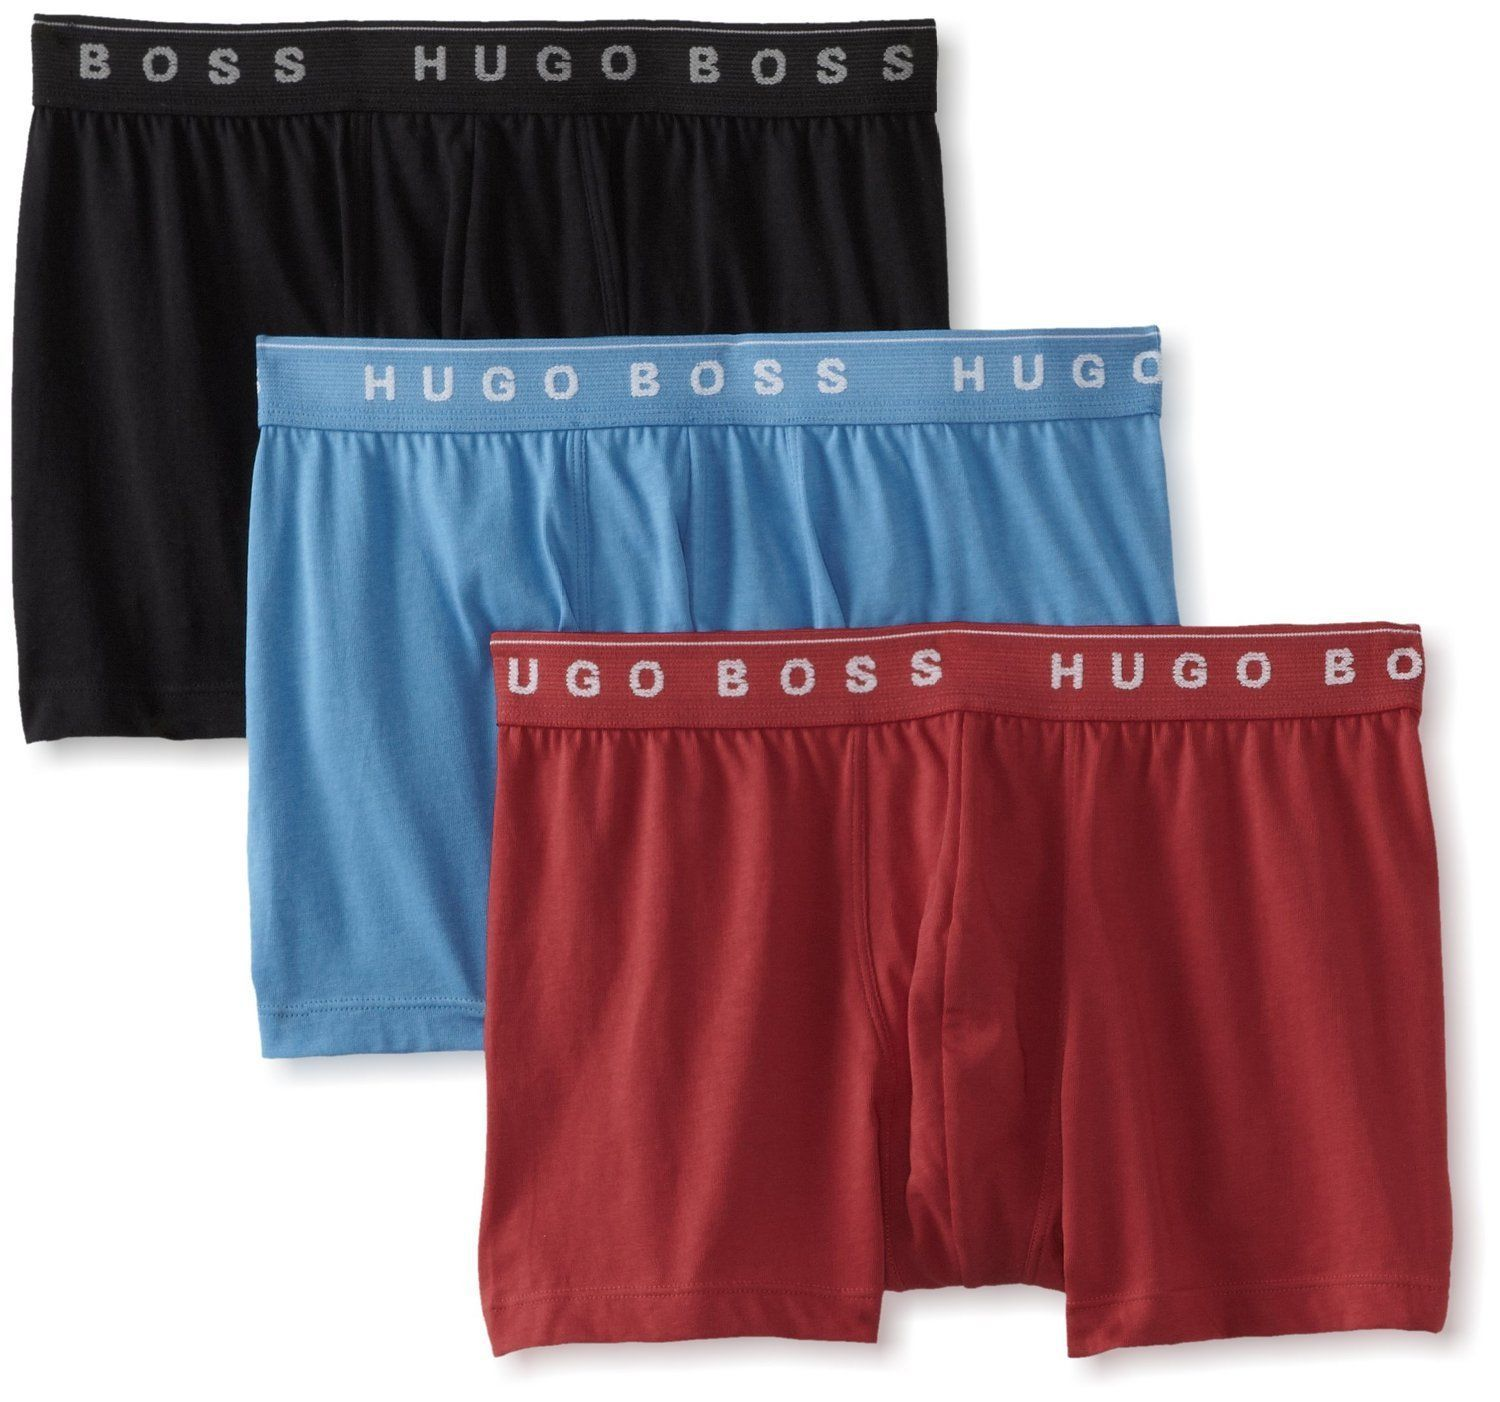 Hugo Boss Men's 3 Pack Sport Premium Cotton Boxer Shorts Trunks 50236732 size M